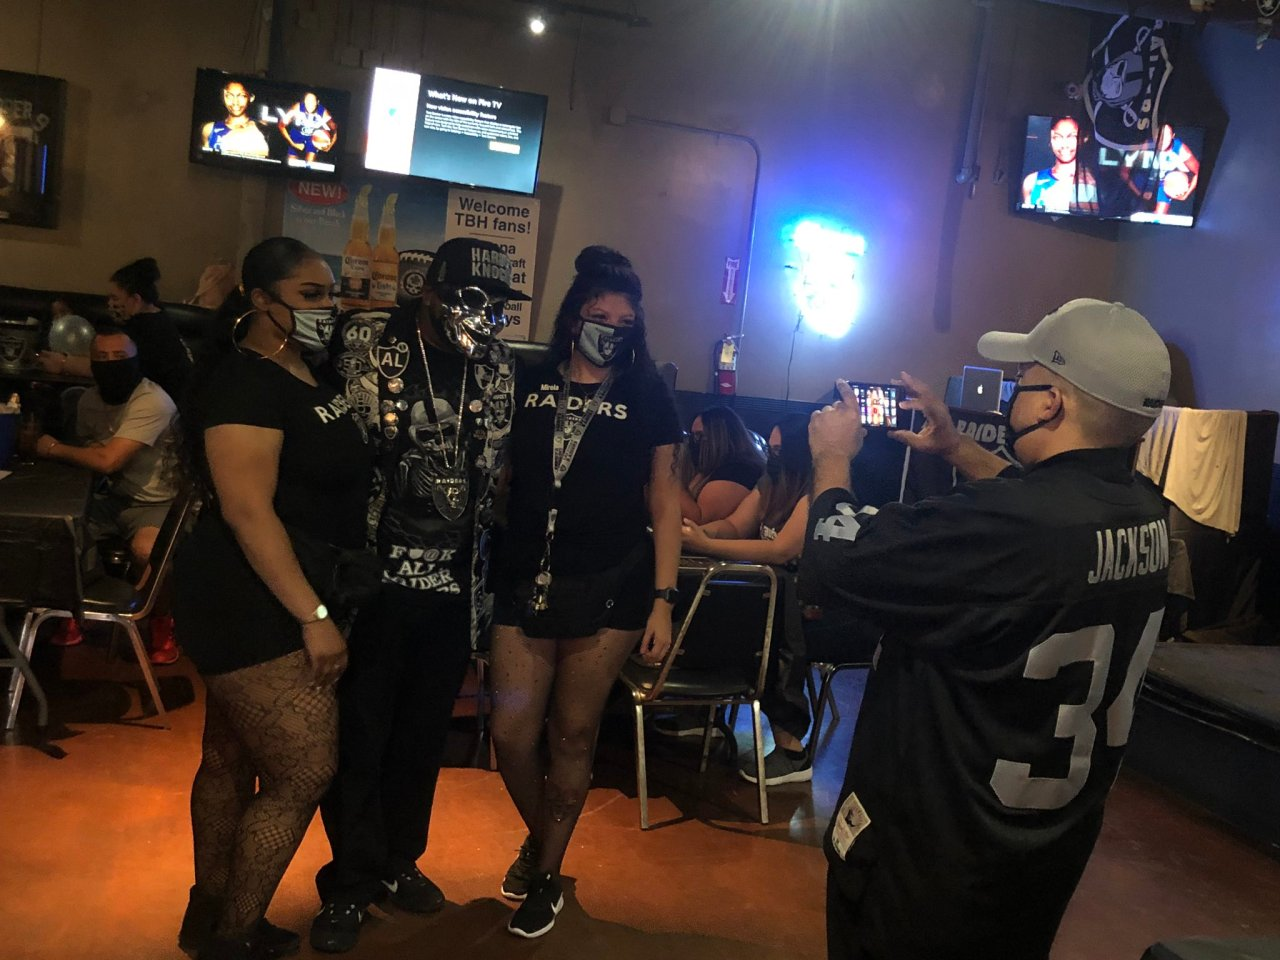 702 Raider Nation Las Vegas celebrates as bars open just in time for Raiders' first home game